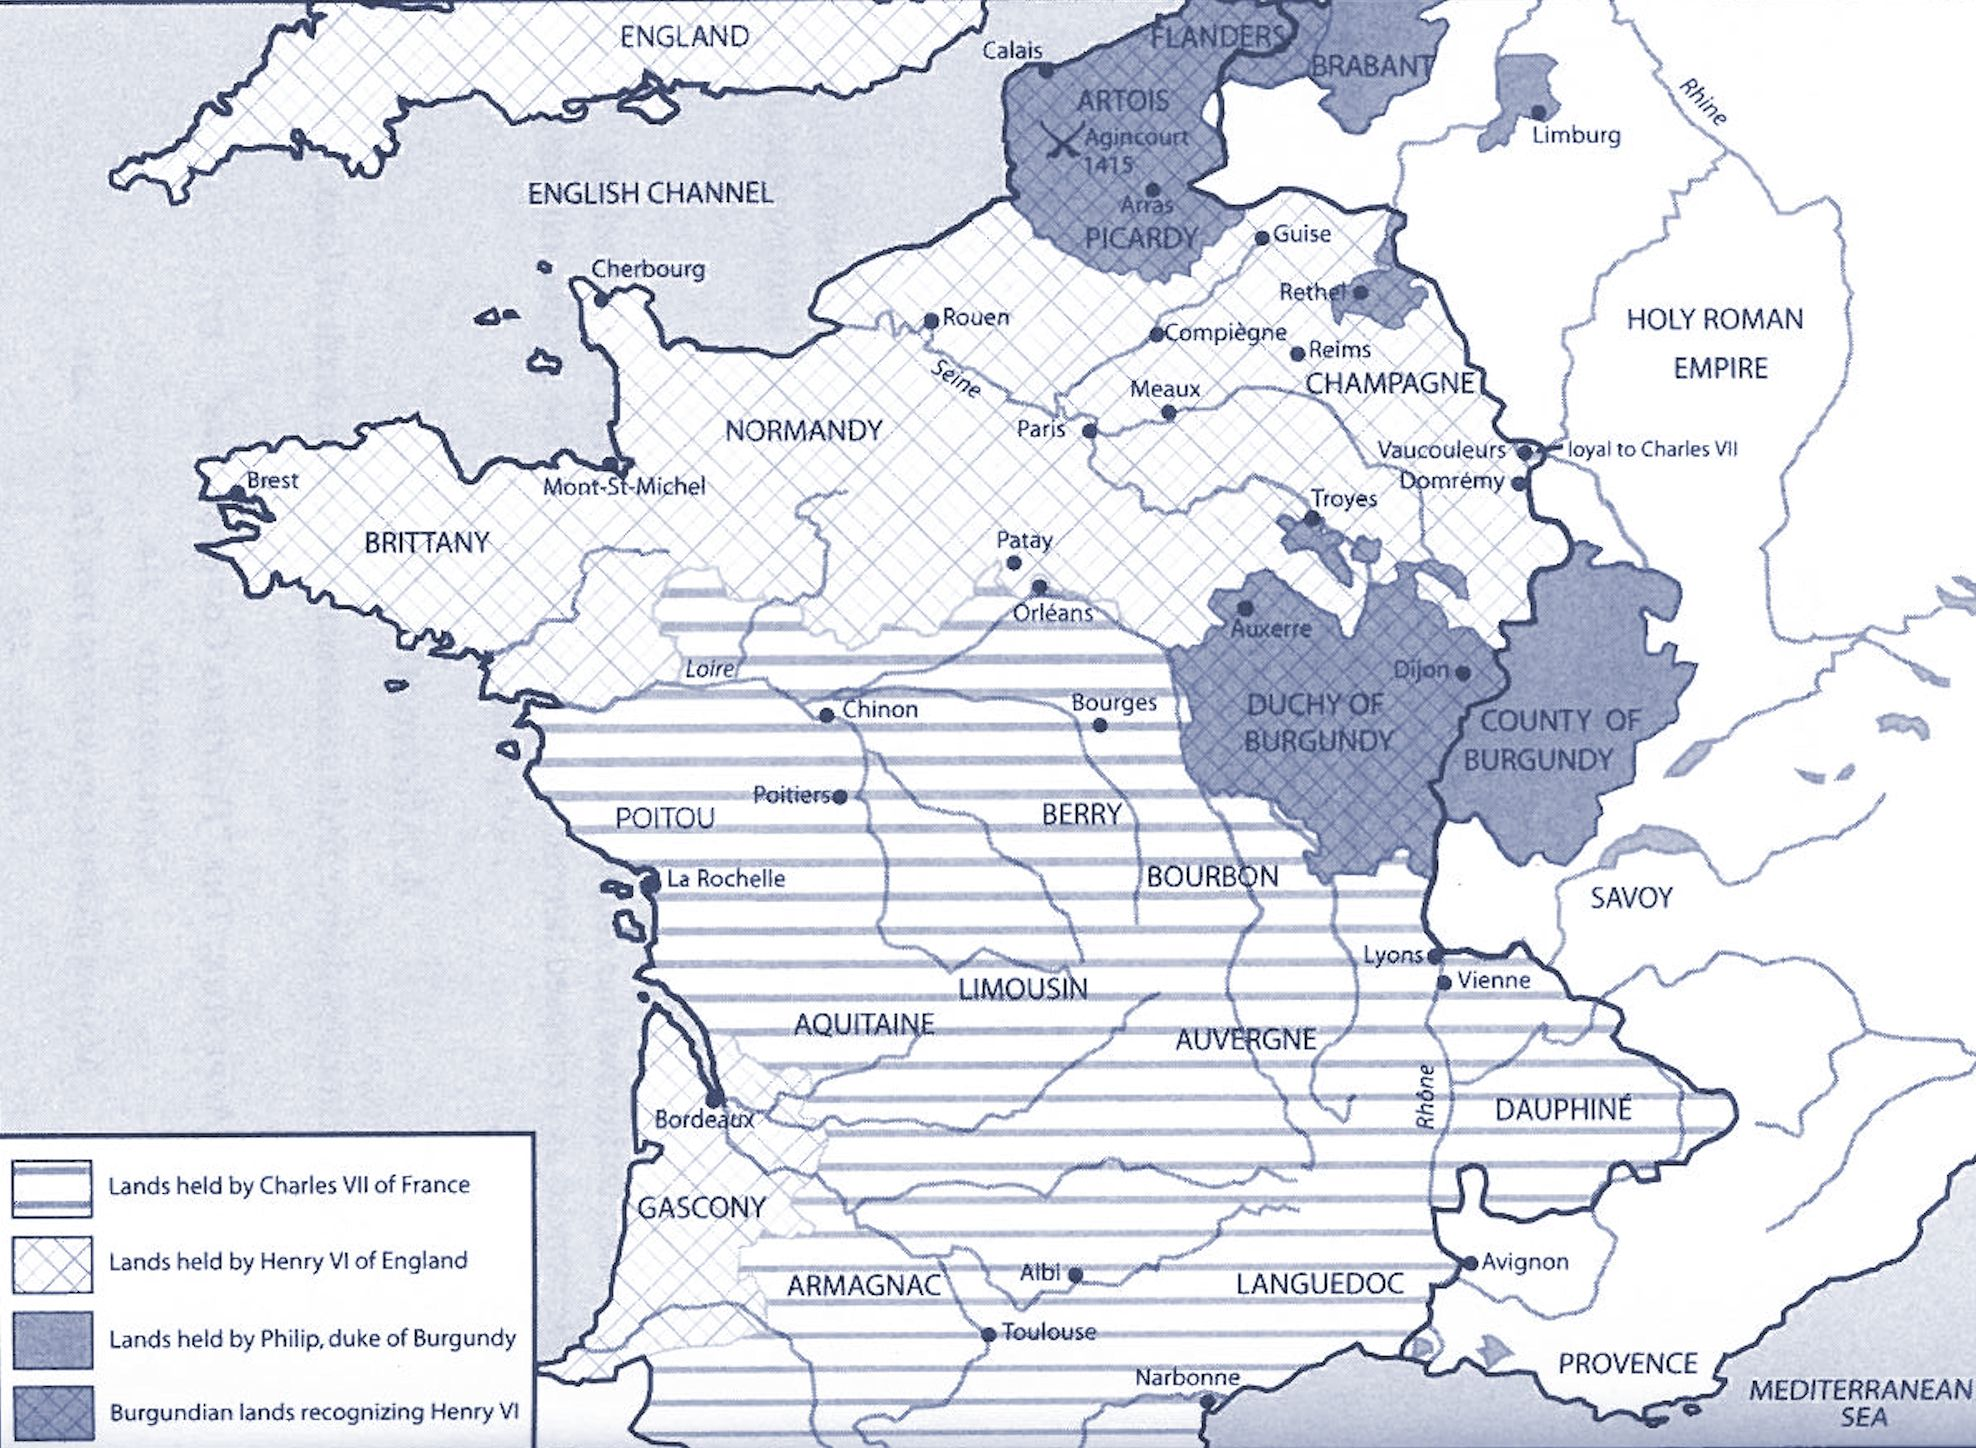 Map Of England To France.Map Of Political Divisions In France In Late 1420s